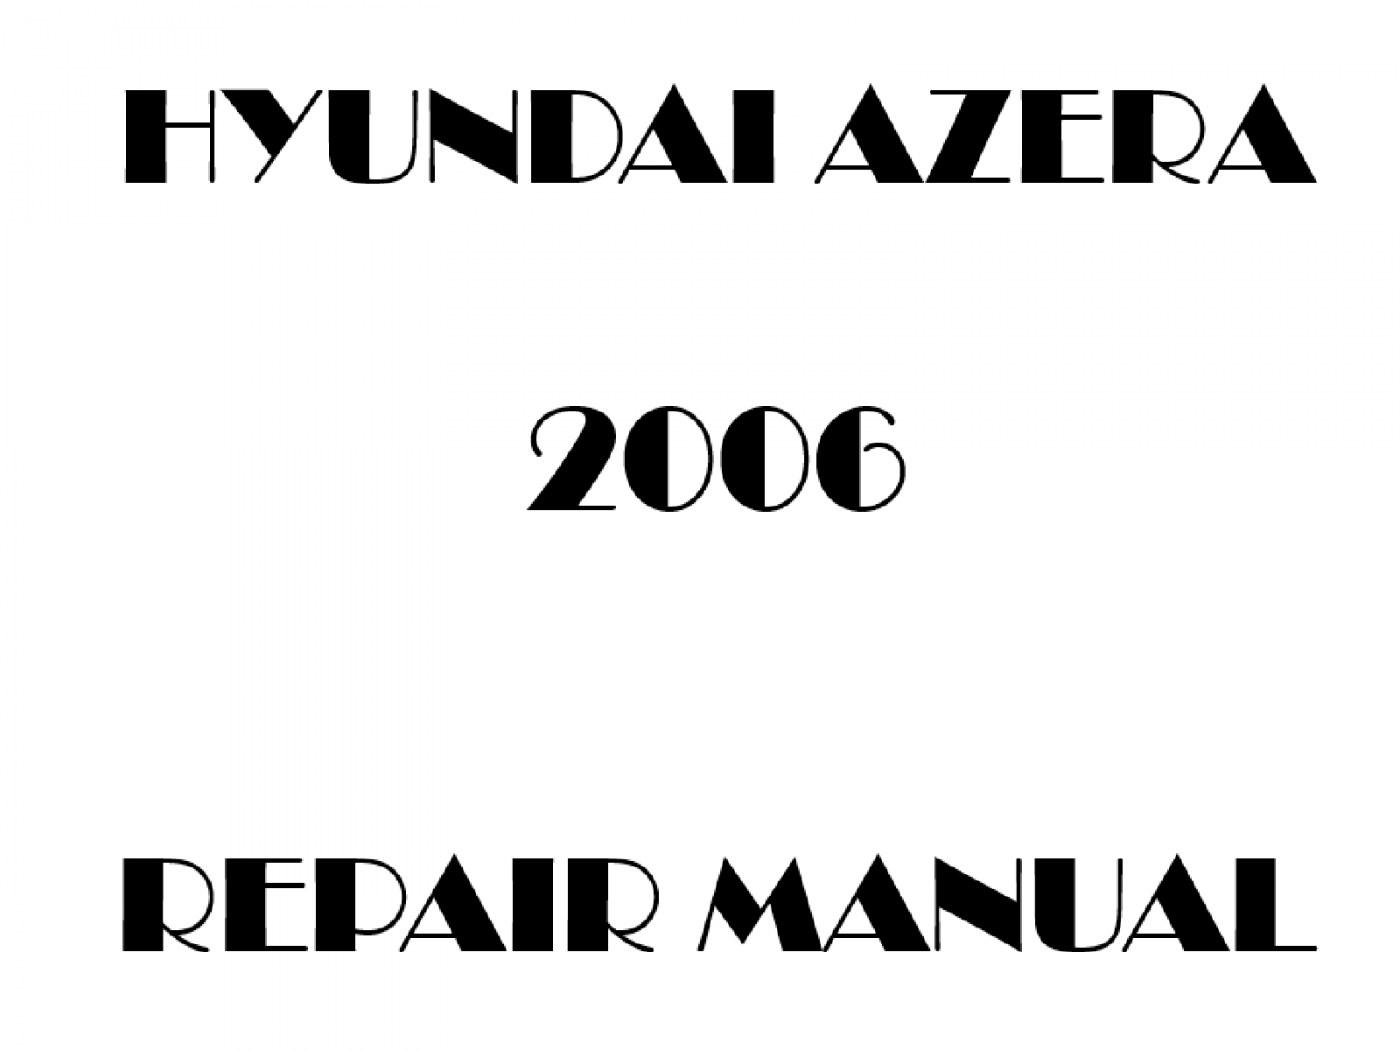 2006 Hyundai Azera repair manual